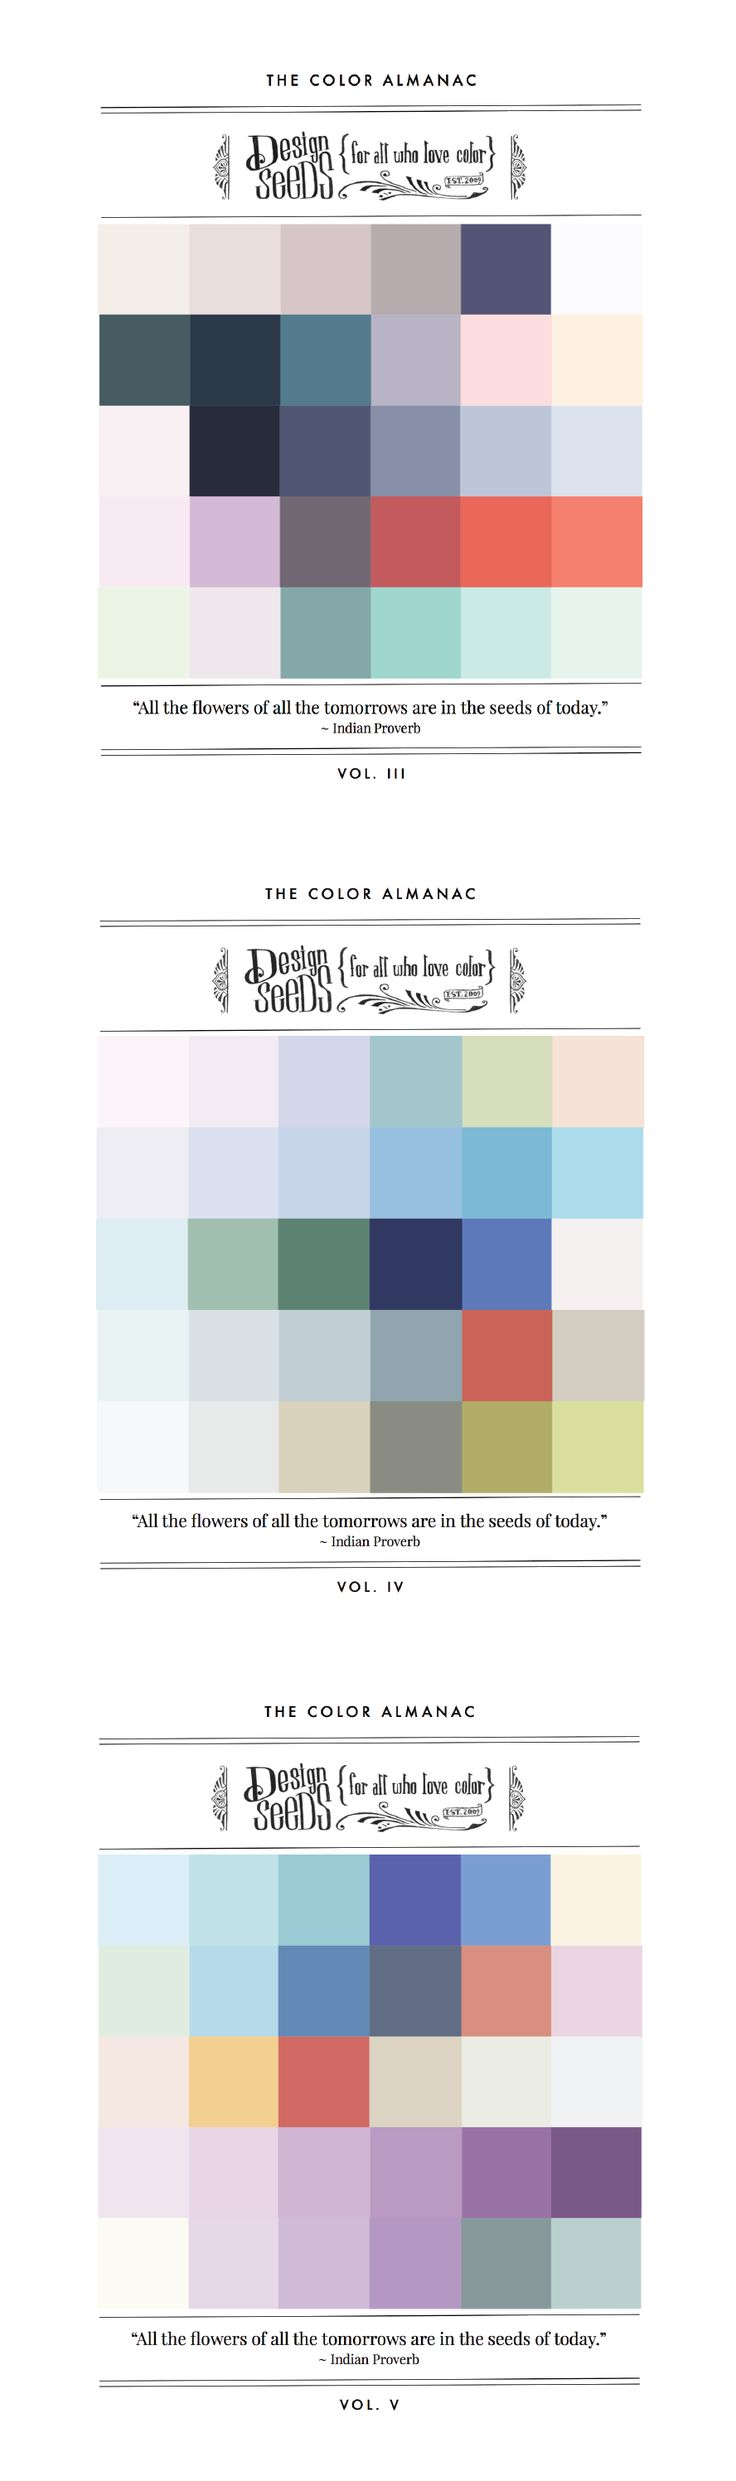 Two New Volumes Of The Color Almanac Were Published This Past Week 499